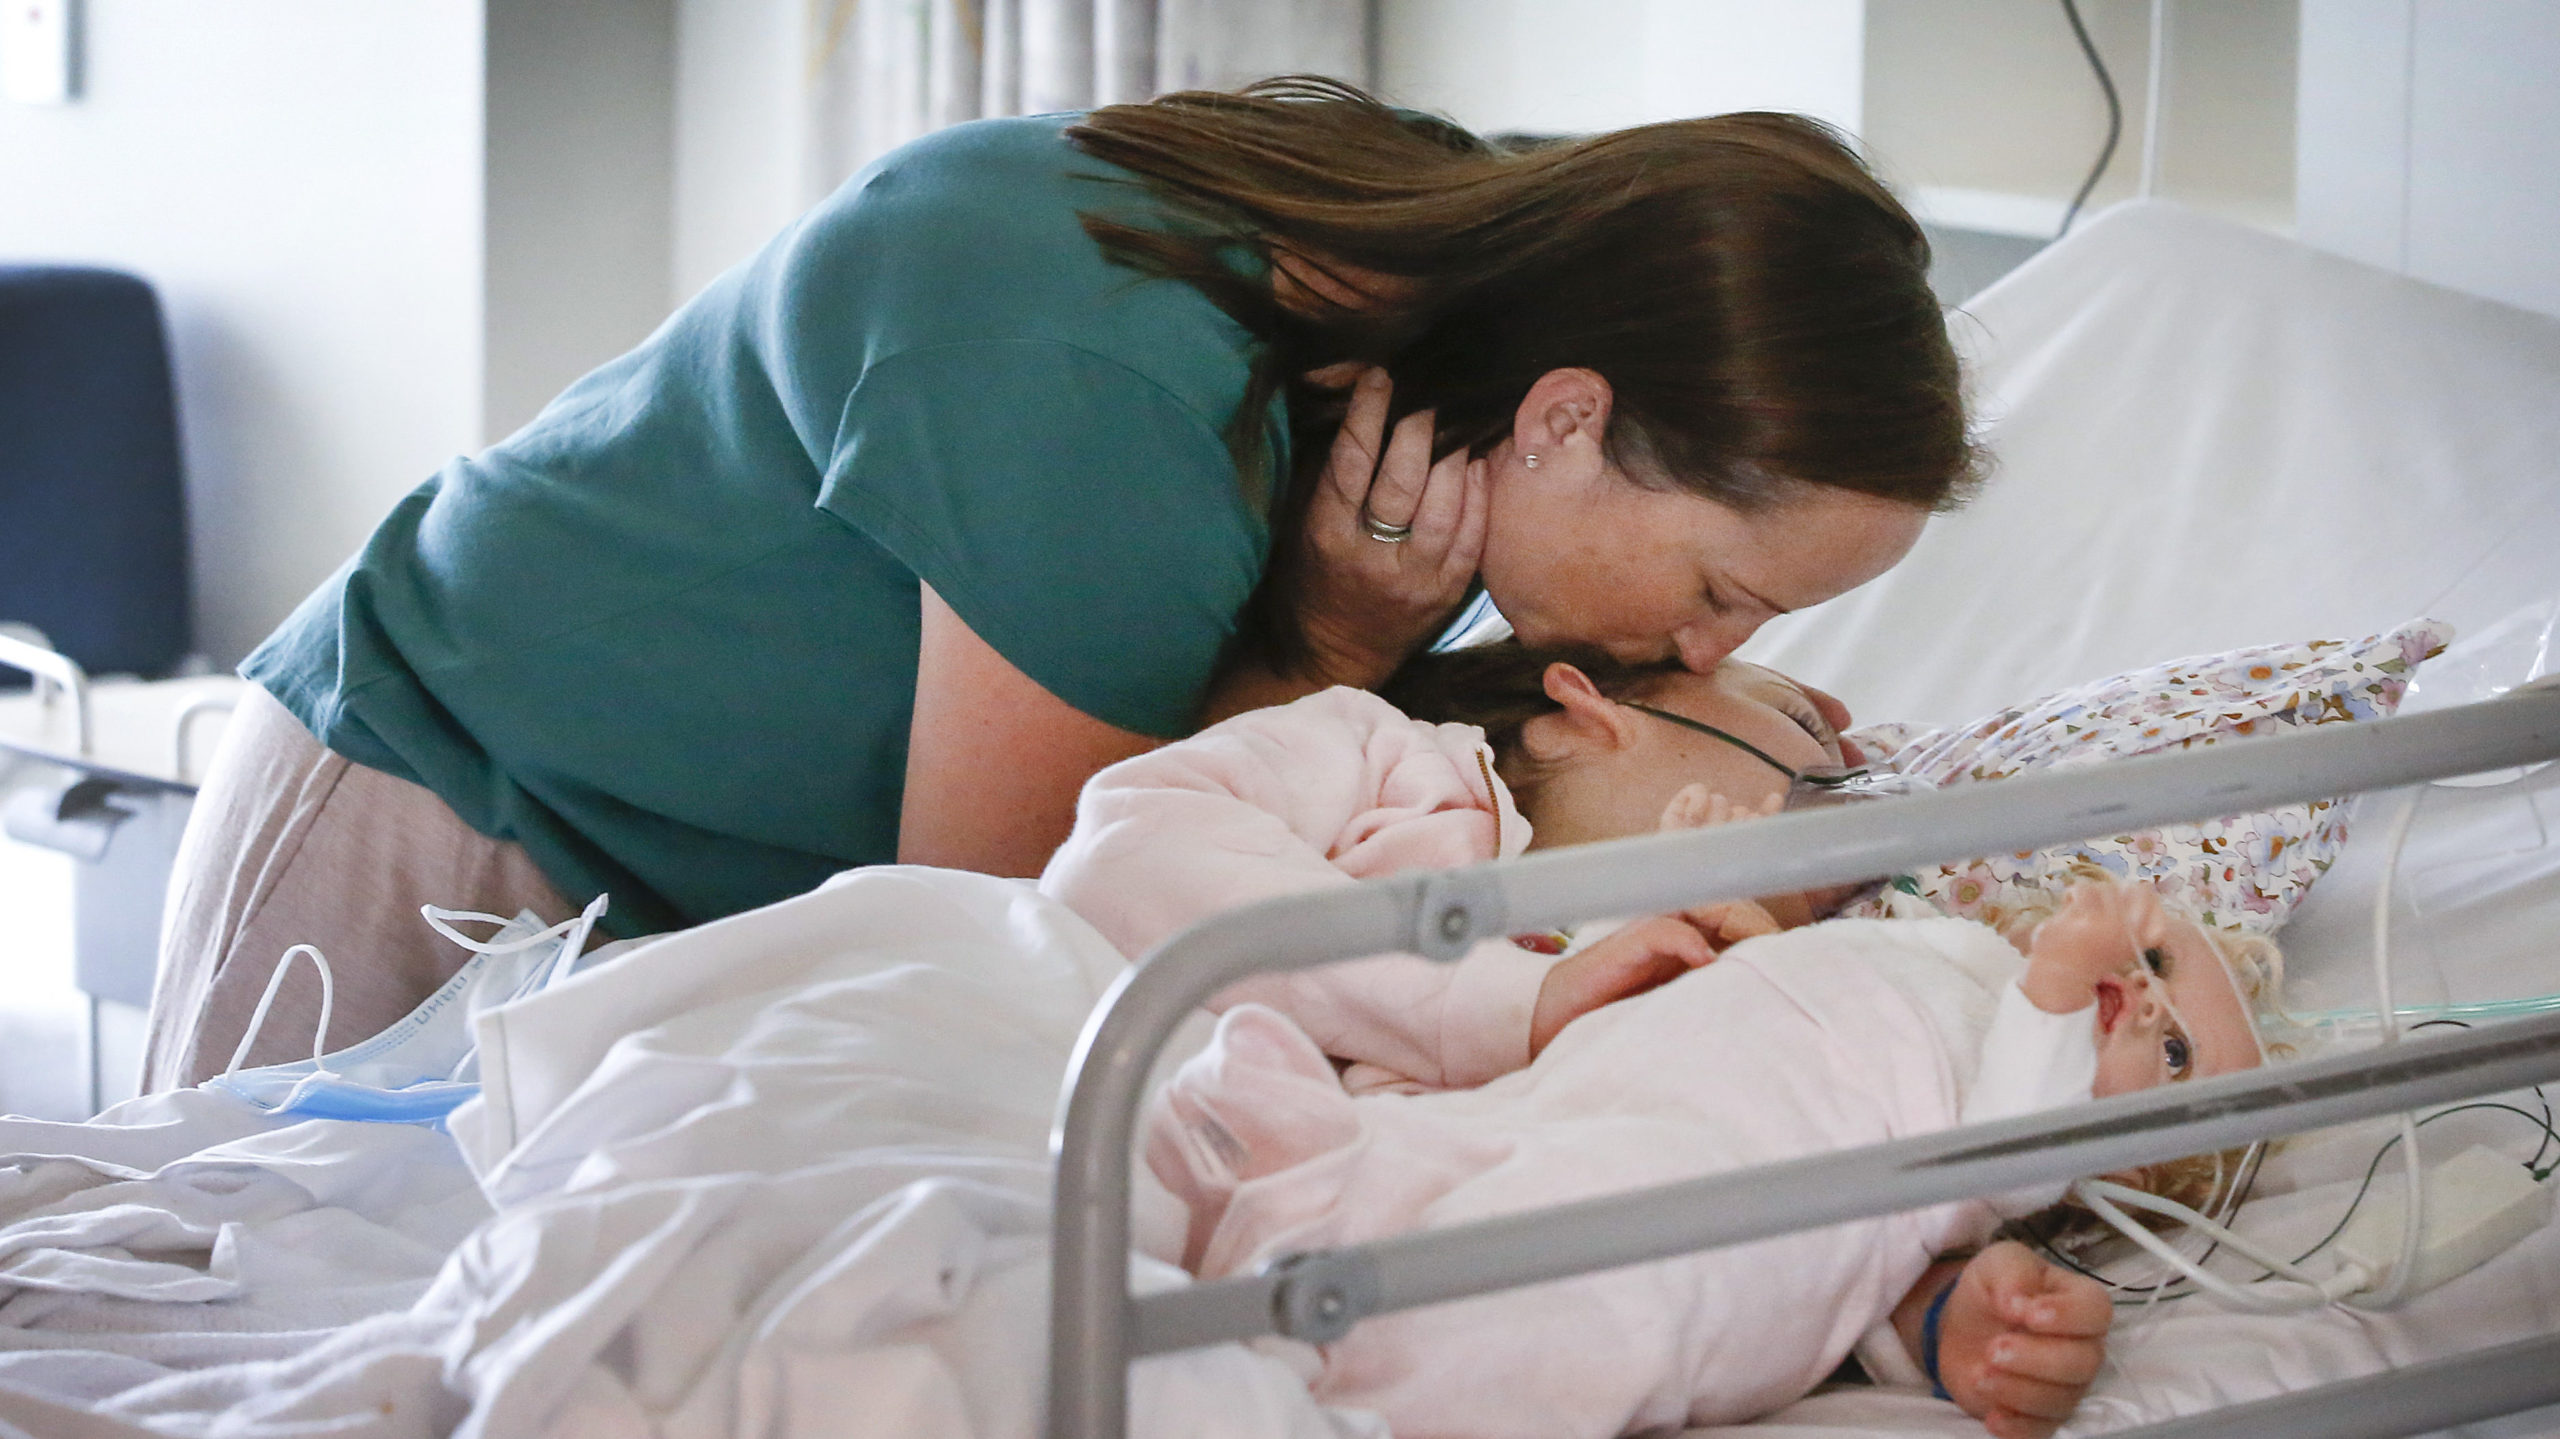 Mum Sara kisses her daughter Piper who is lying in her hospital bed